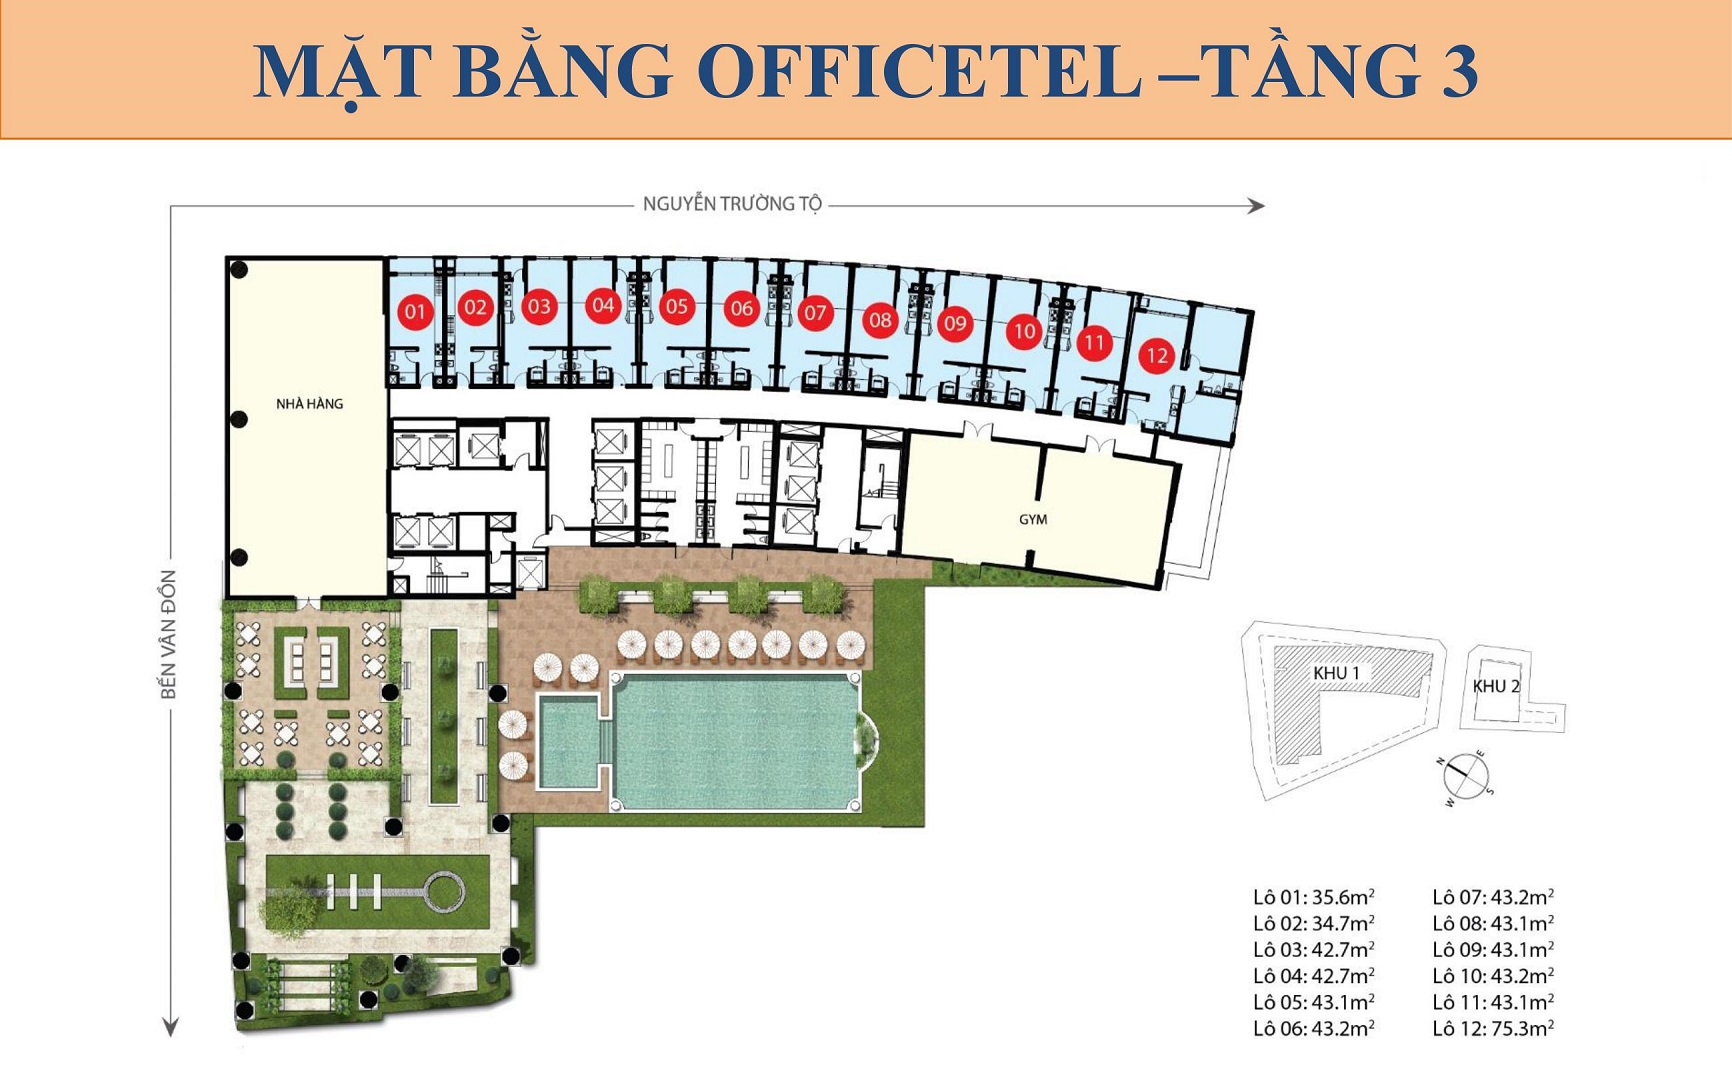 mat-bang-officetel-tang3-saigon-royal